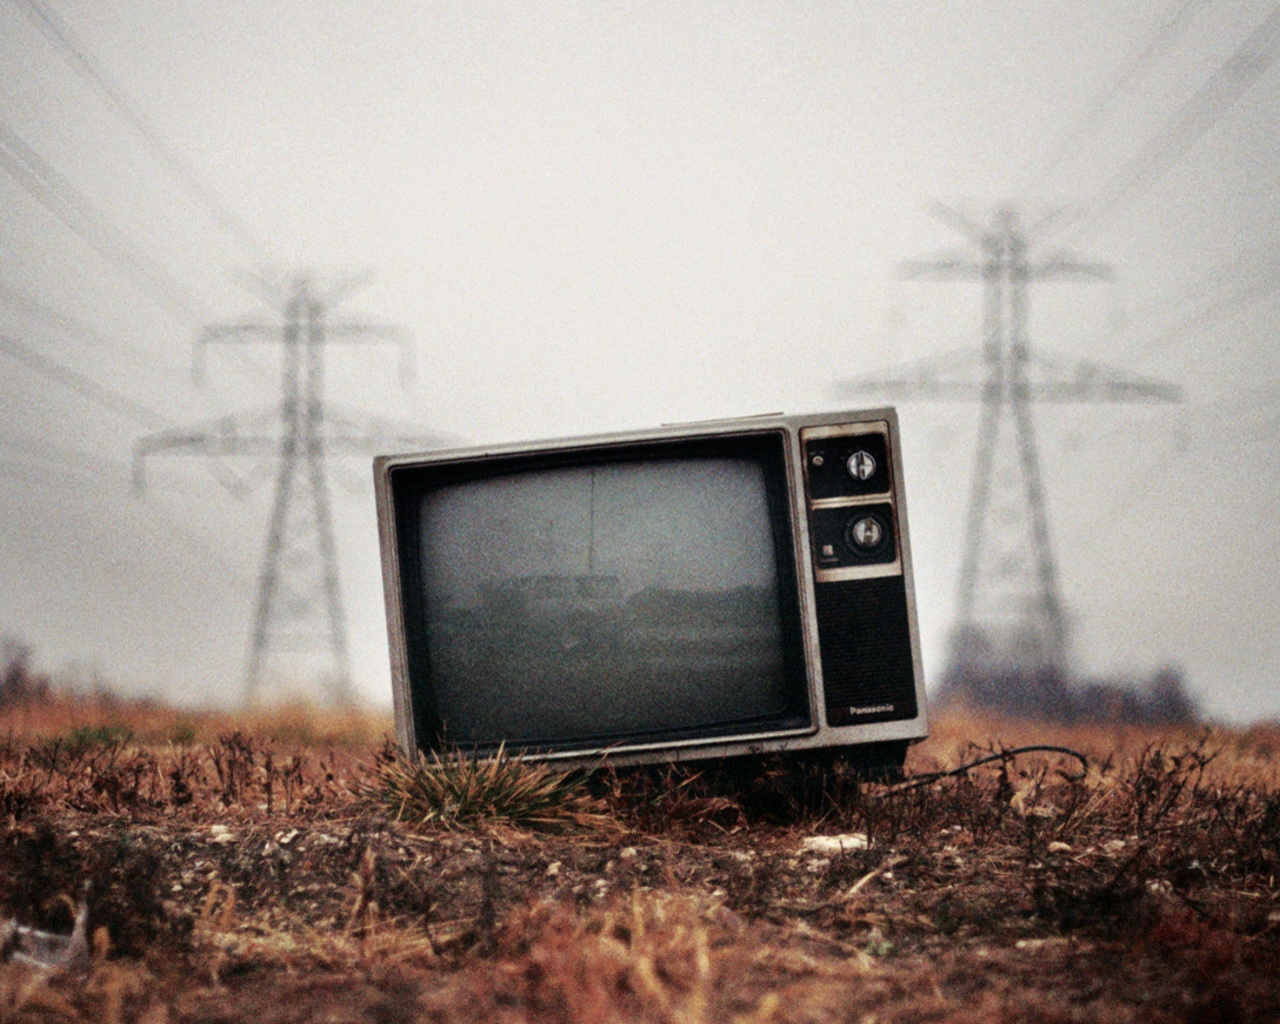 Amazing Old Tv Photography Art Wallpaper Top Quality HD Wallpapers Download Free Images Wallpaper [1000image.com]